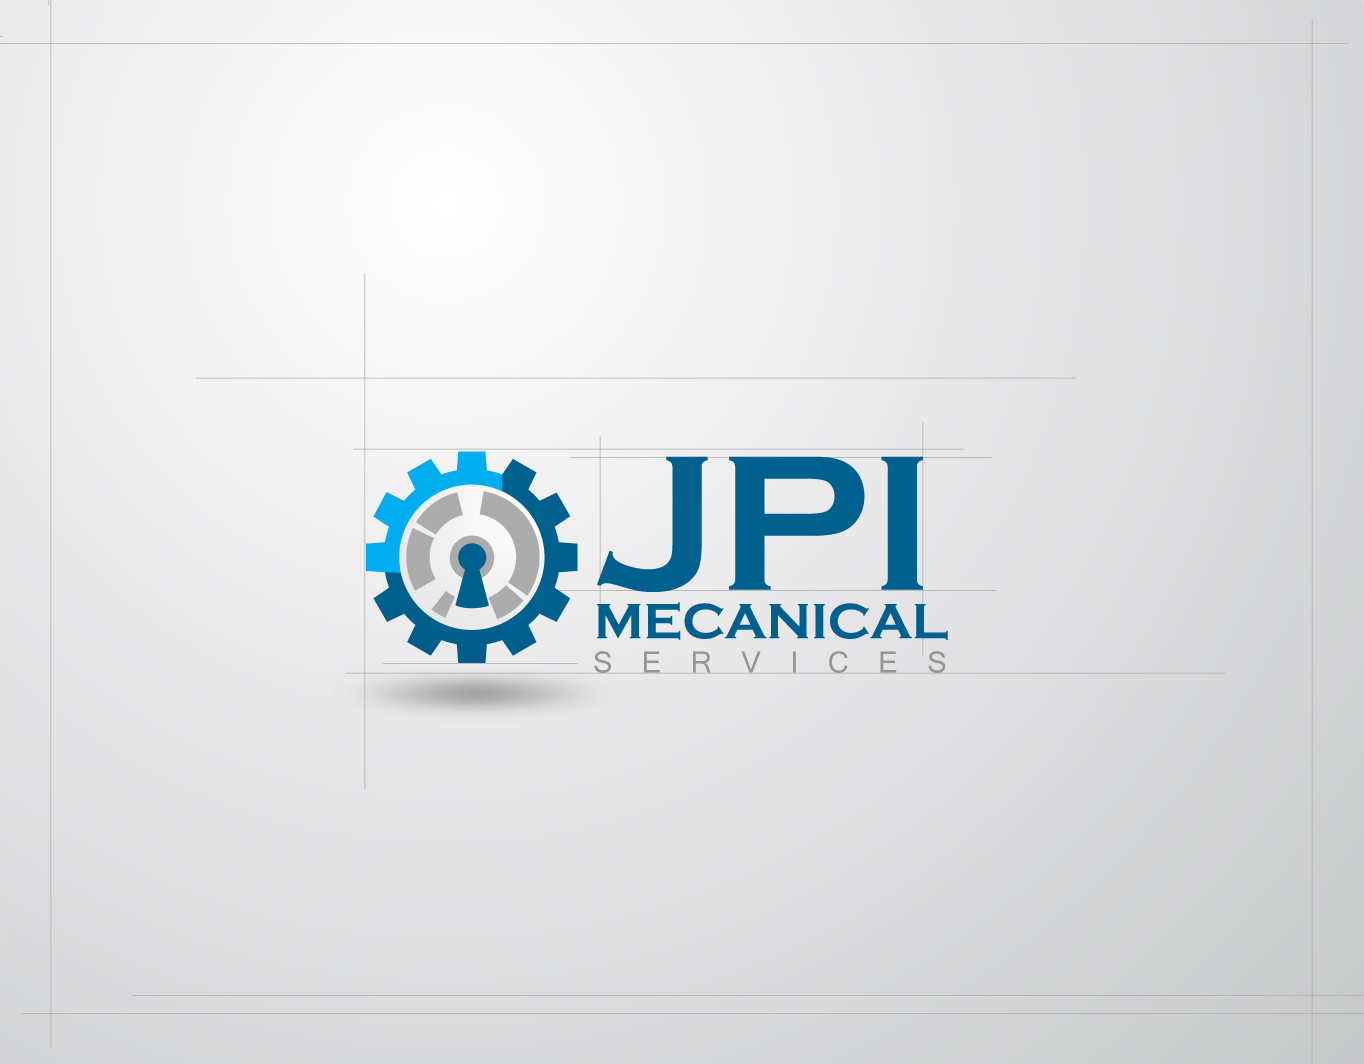 Logo Design by Mark Anthony Moreto Jordan - Entry No. 34 in the Logo Design Contest Inspiring Logo Design for JPI Mecanical Services.